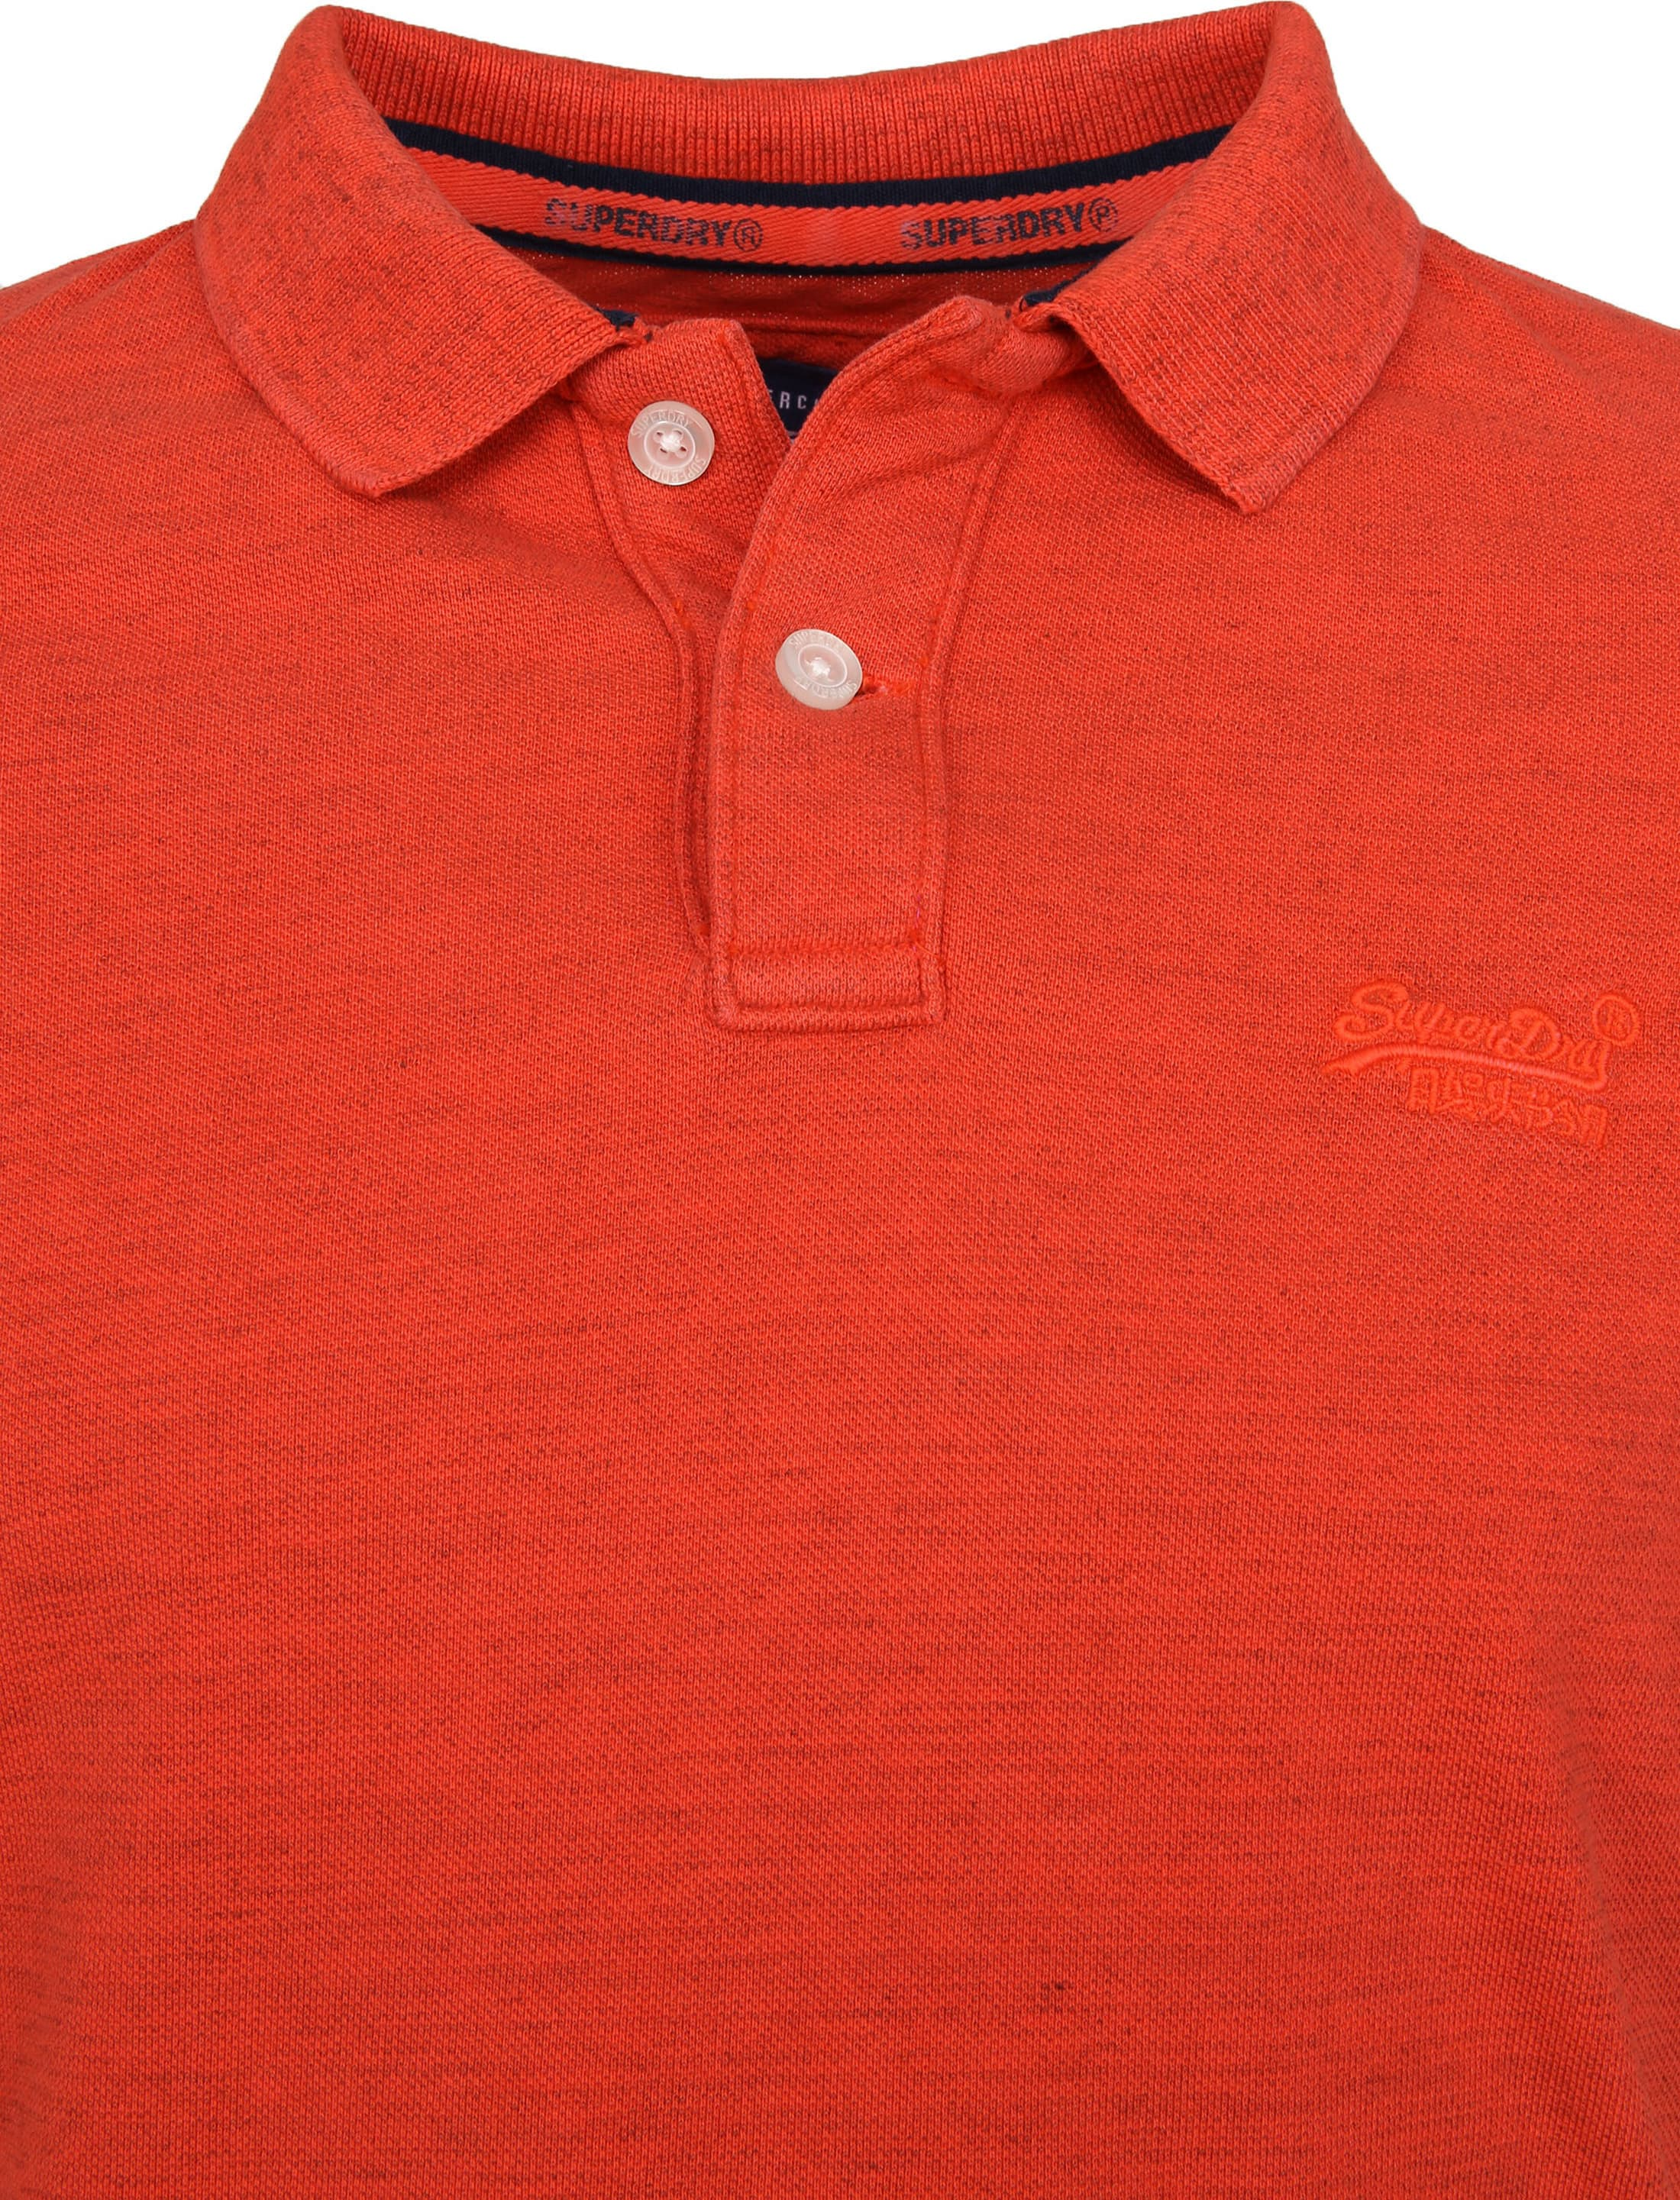 Superdry Premium Poloshirt Orange foto 2